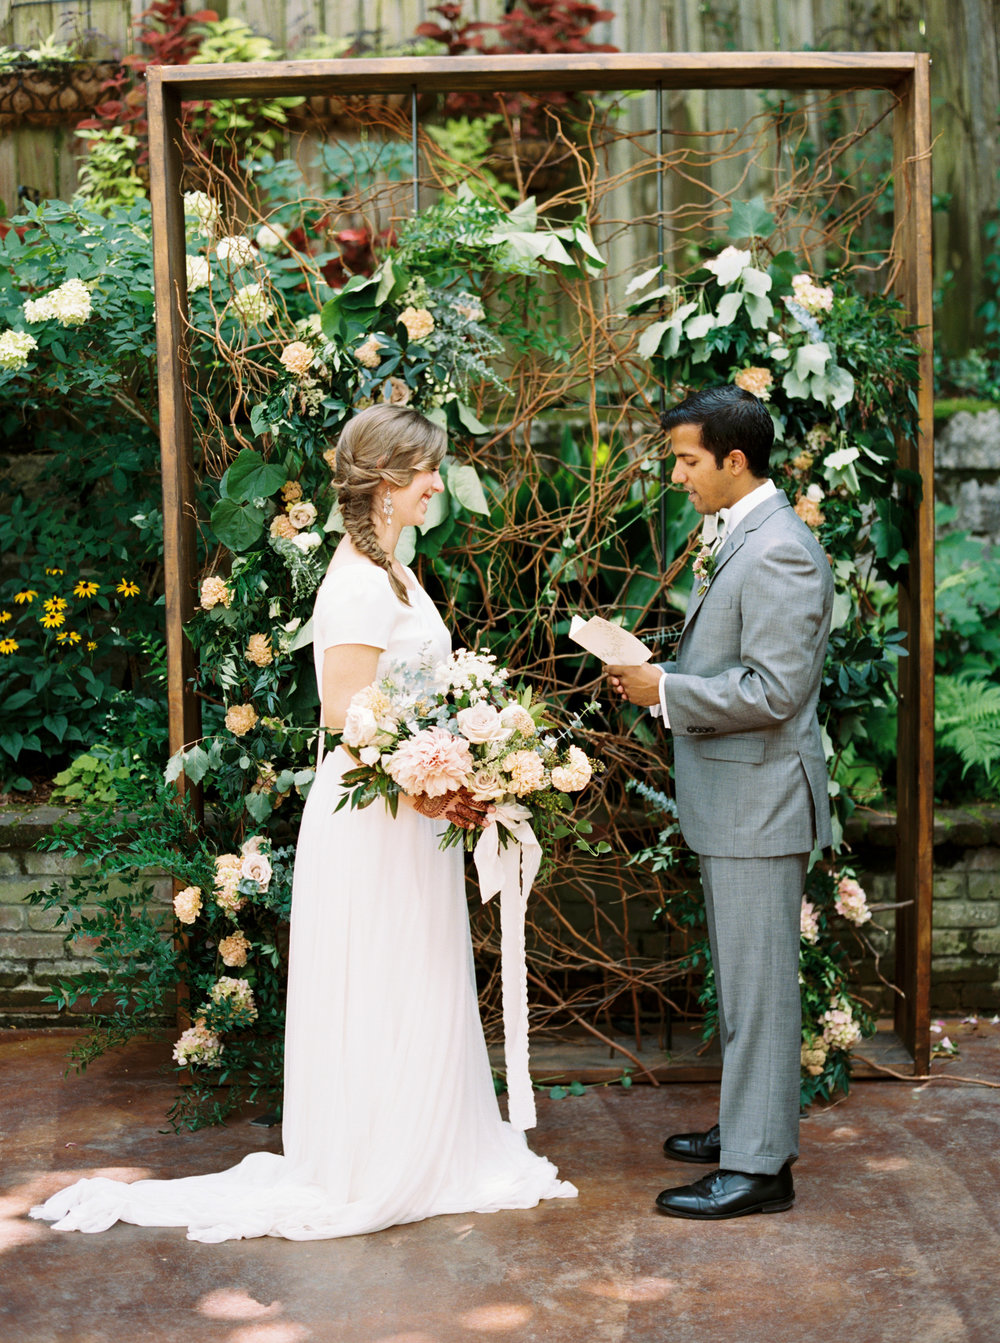 Wahoo_Grill_Atlanta_Indian_Wedding_Abigail_Malone_Photgoraphy_FIlm-91.jpg